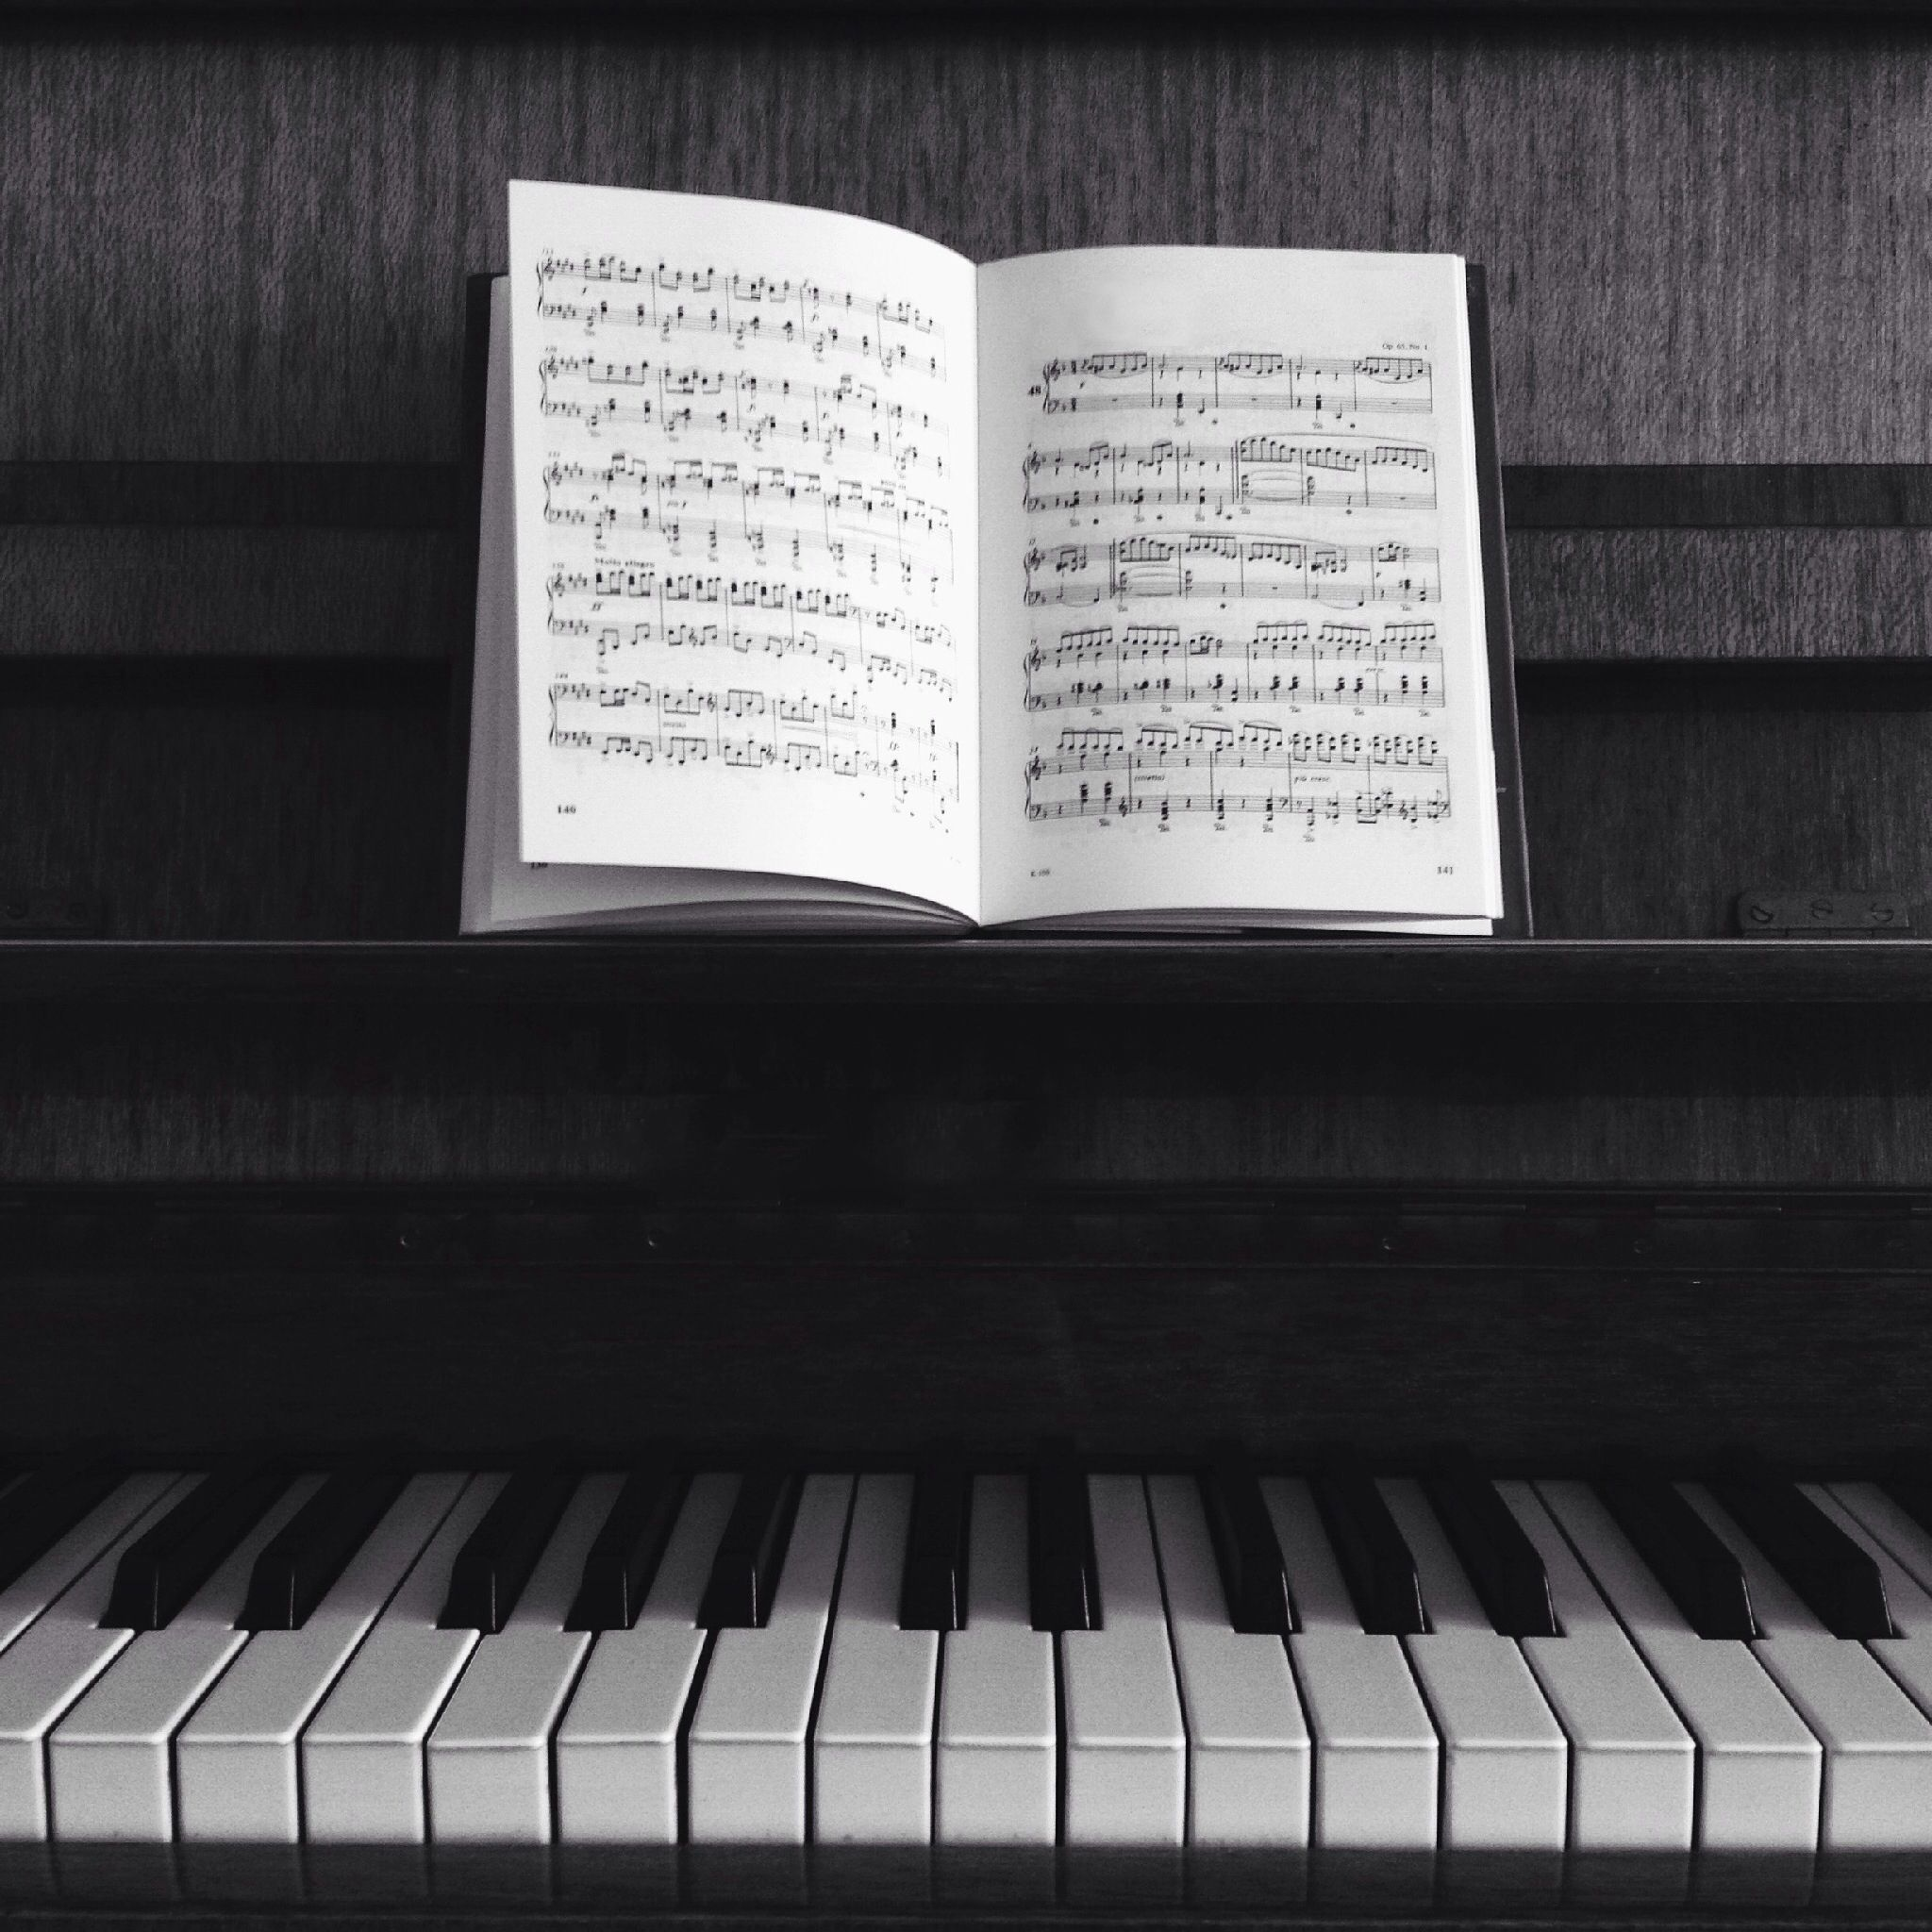 7 Websites With Free Public Domain Songs | Music lessons ...